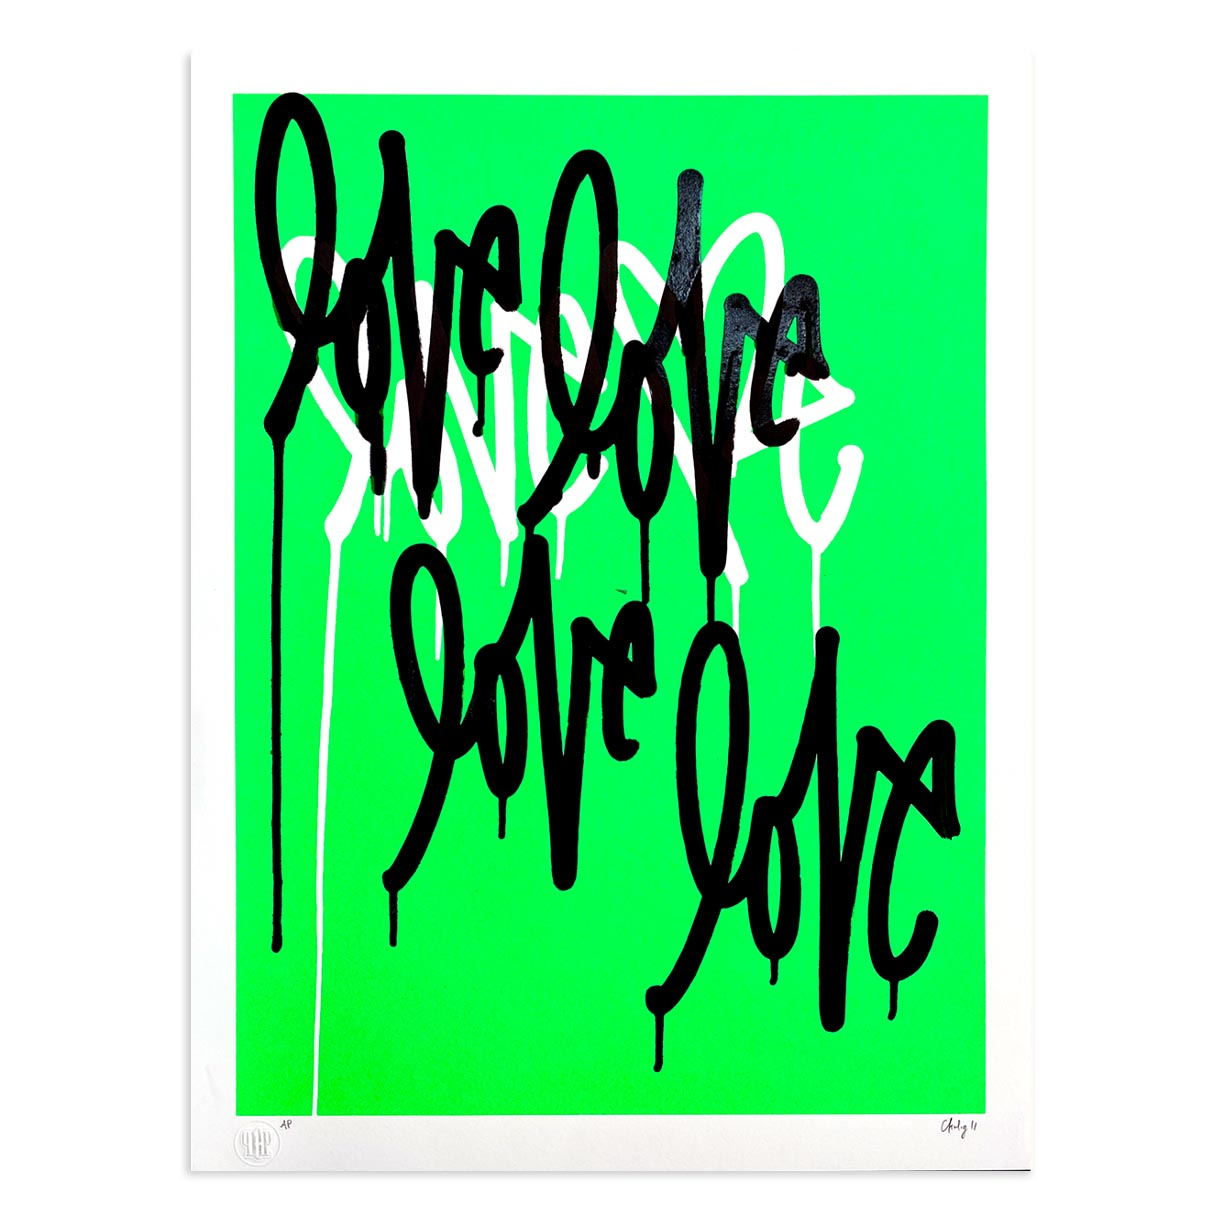 Love Me Fluorescent Gr. AE/5 by Curtis Kulig | Artist Edition | Poster Child Prints